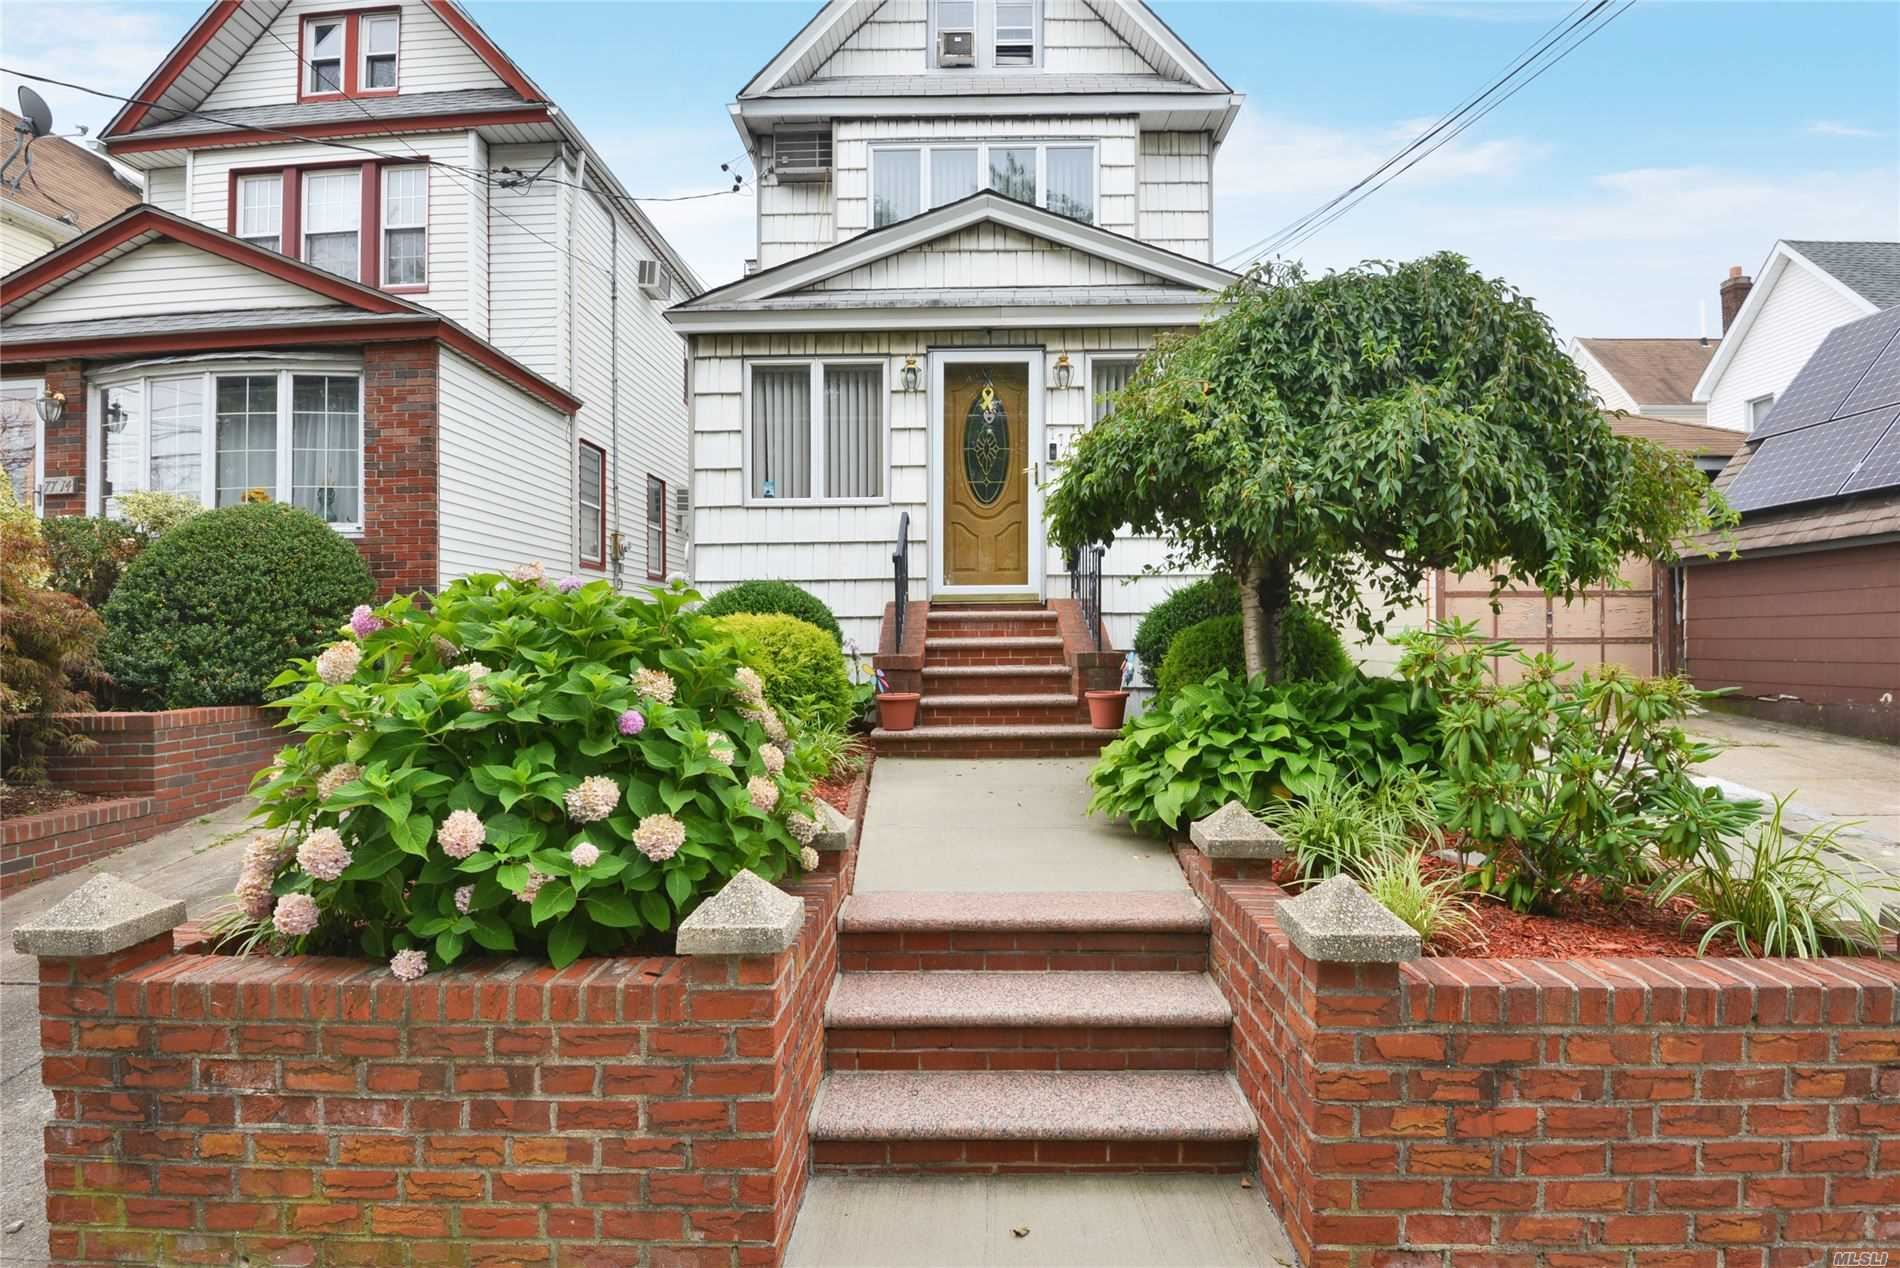 77-12 66th Road, Middle Village, NY 11379 - MLS#: 3242970